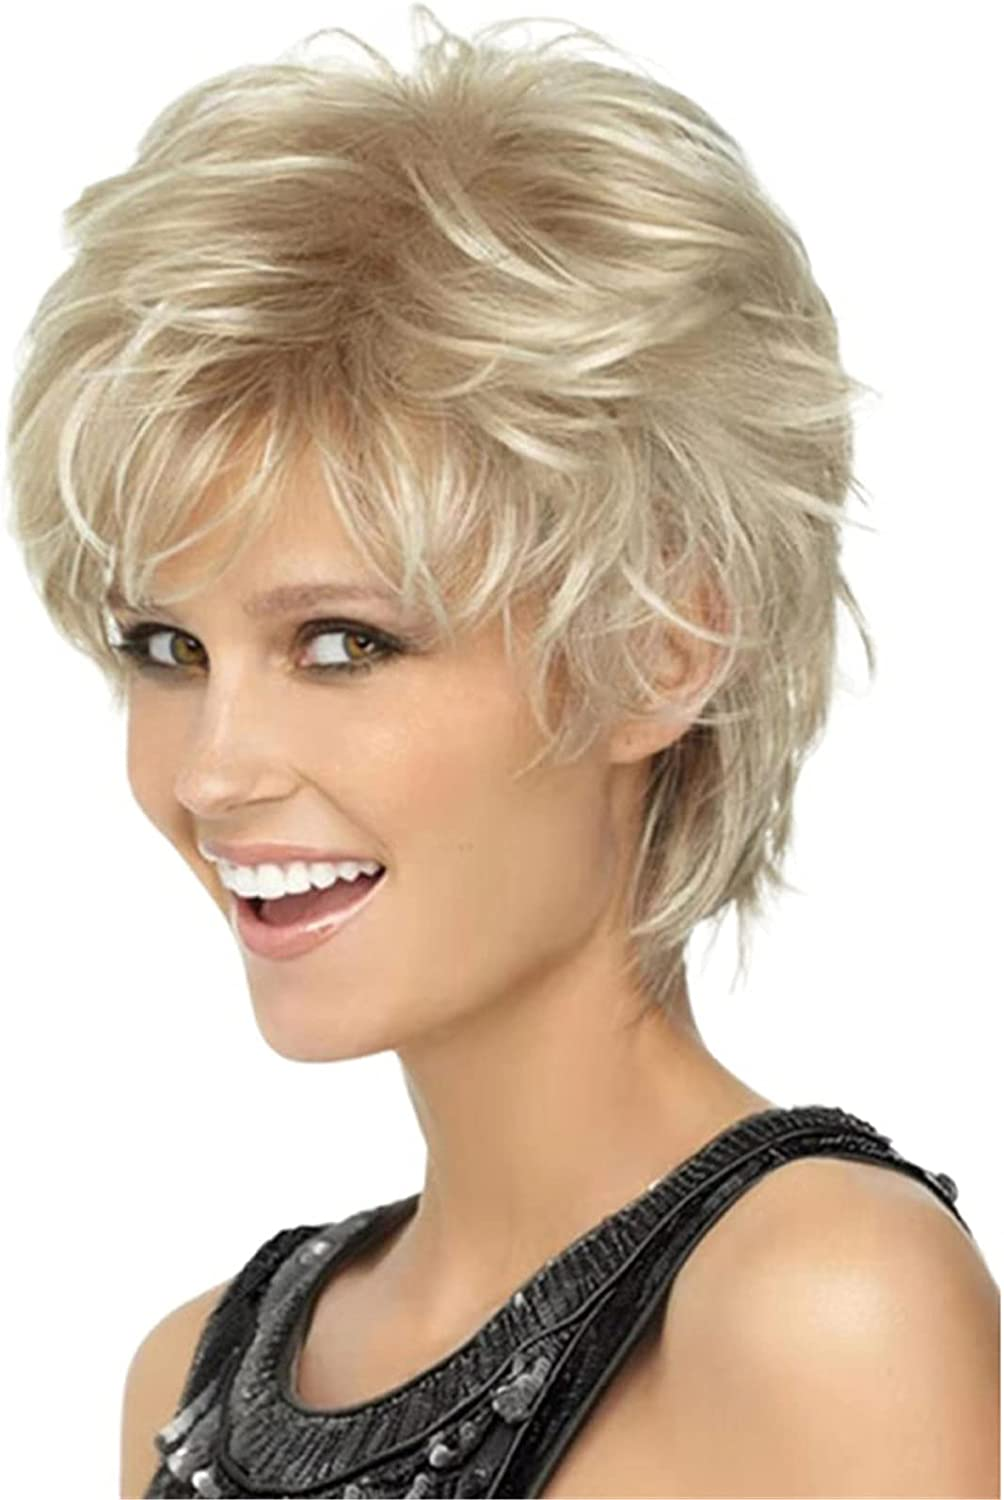 ZYC Mix Brown Blonde Pixie Cut Wig Now free shipping Nippon regular agency Ombre Shaggy Layered Women's